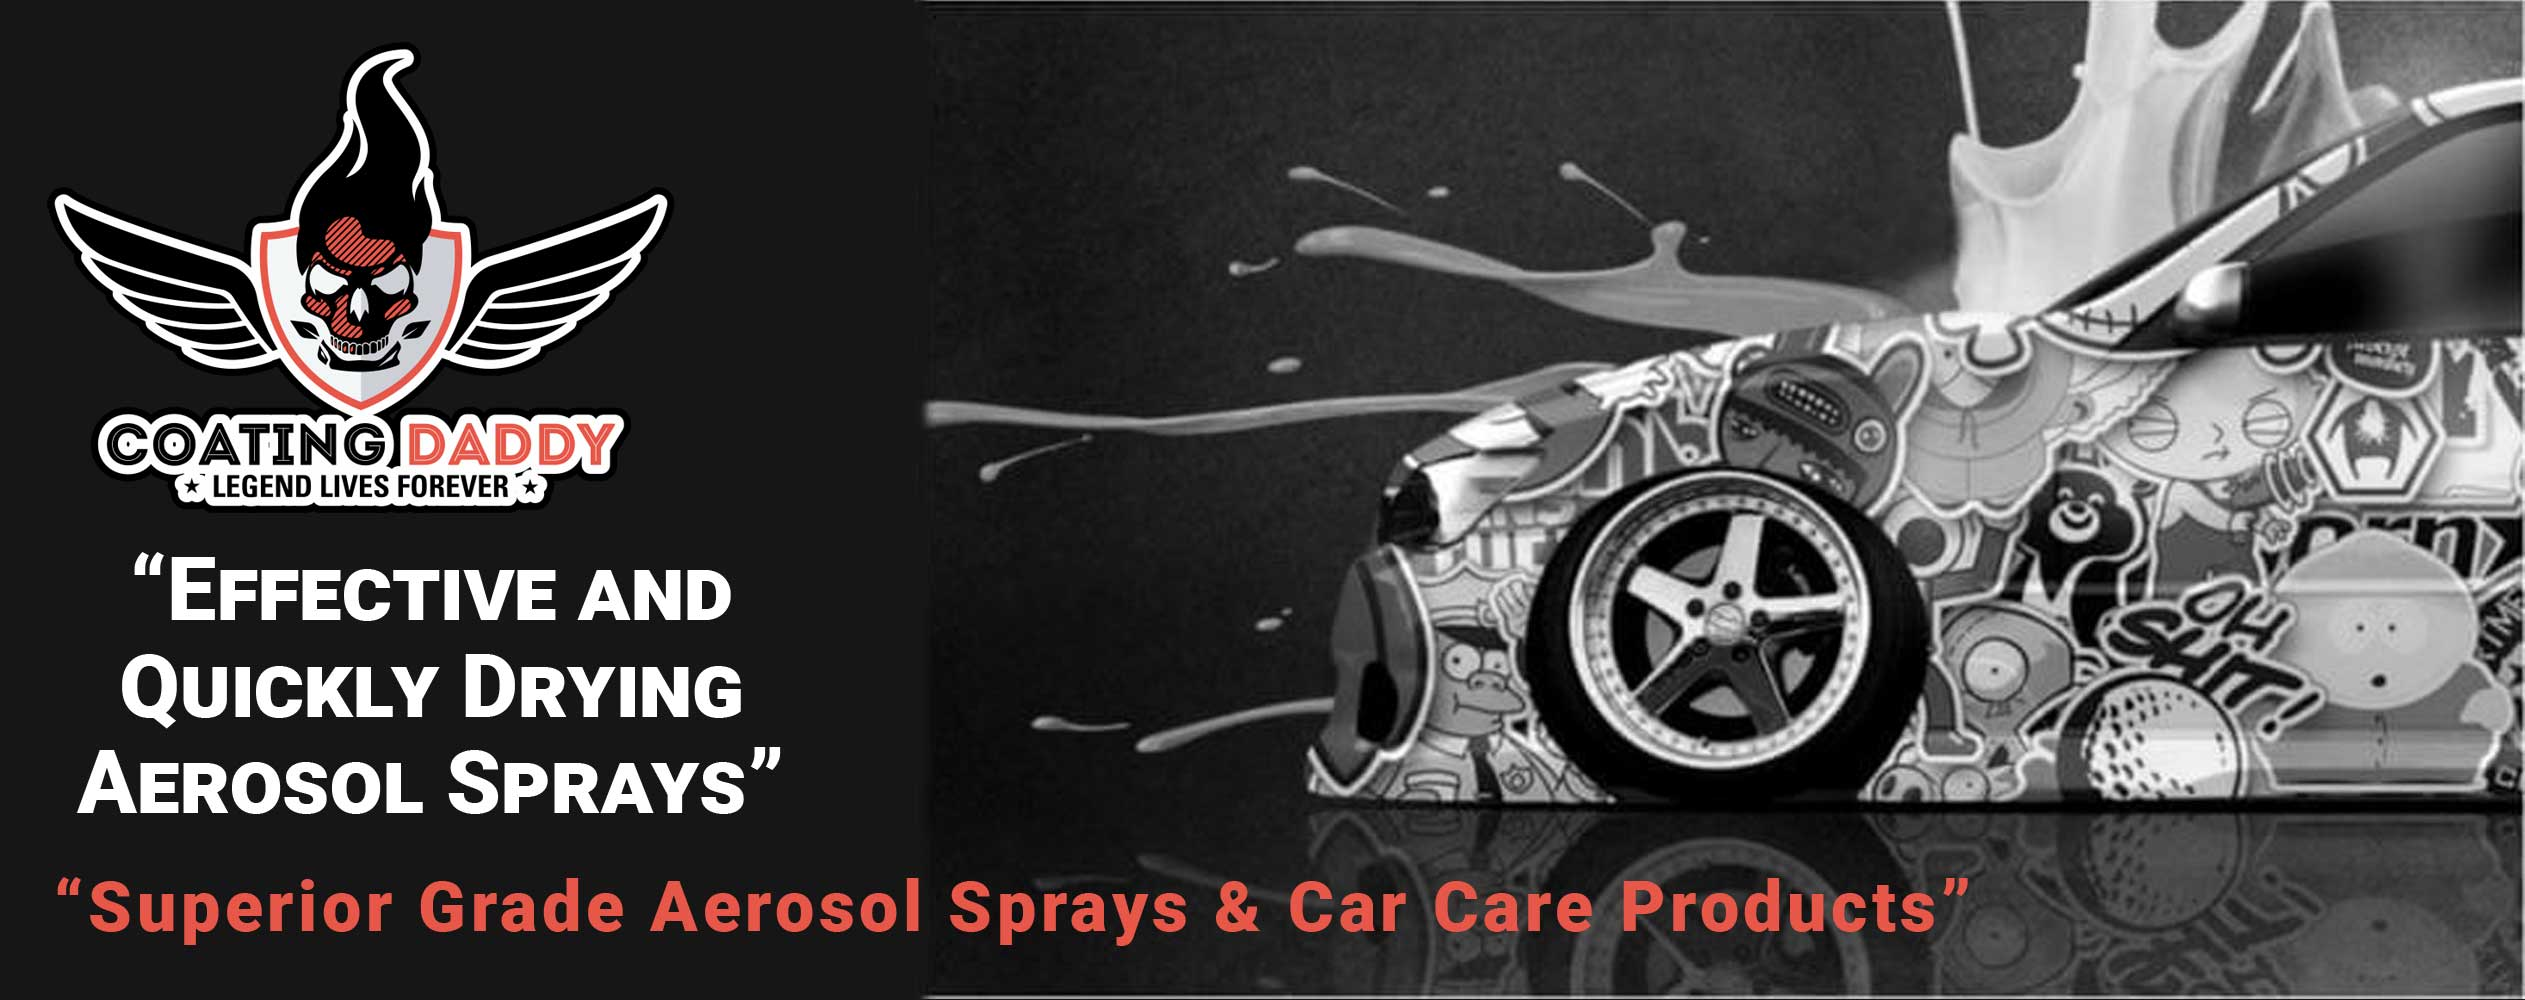 Effective And Quickly Drying Aerosol Sprays